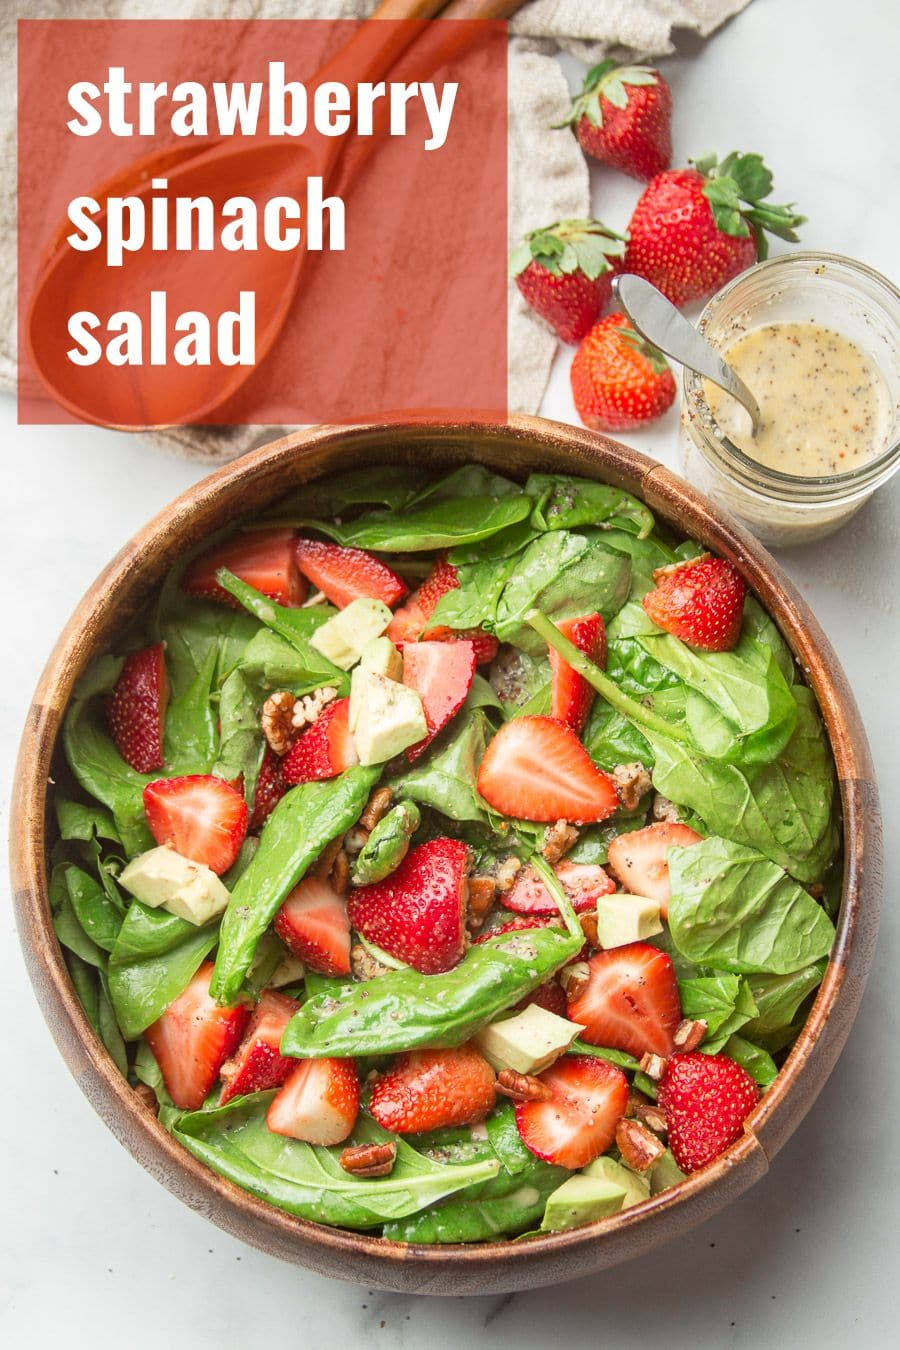 Kitchen Counter Set with a Bowl of Strawberry Spinach Salad, Dressing, Strawberries and Wooden Spoons